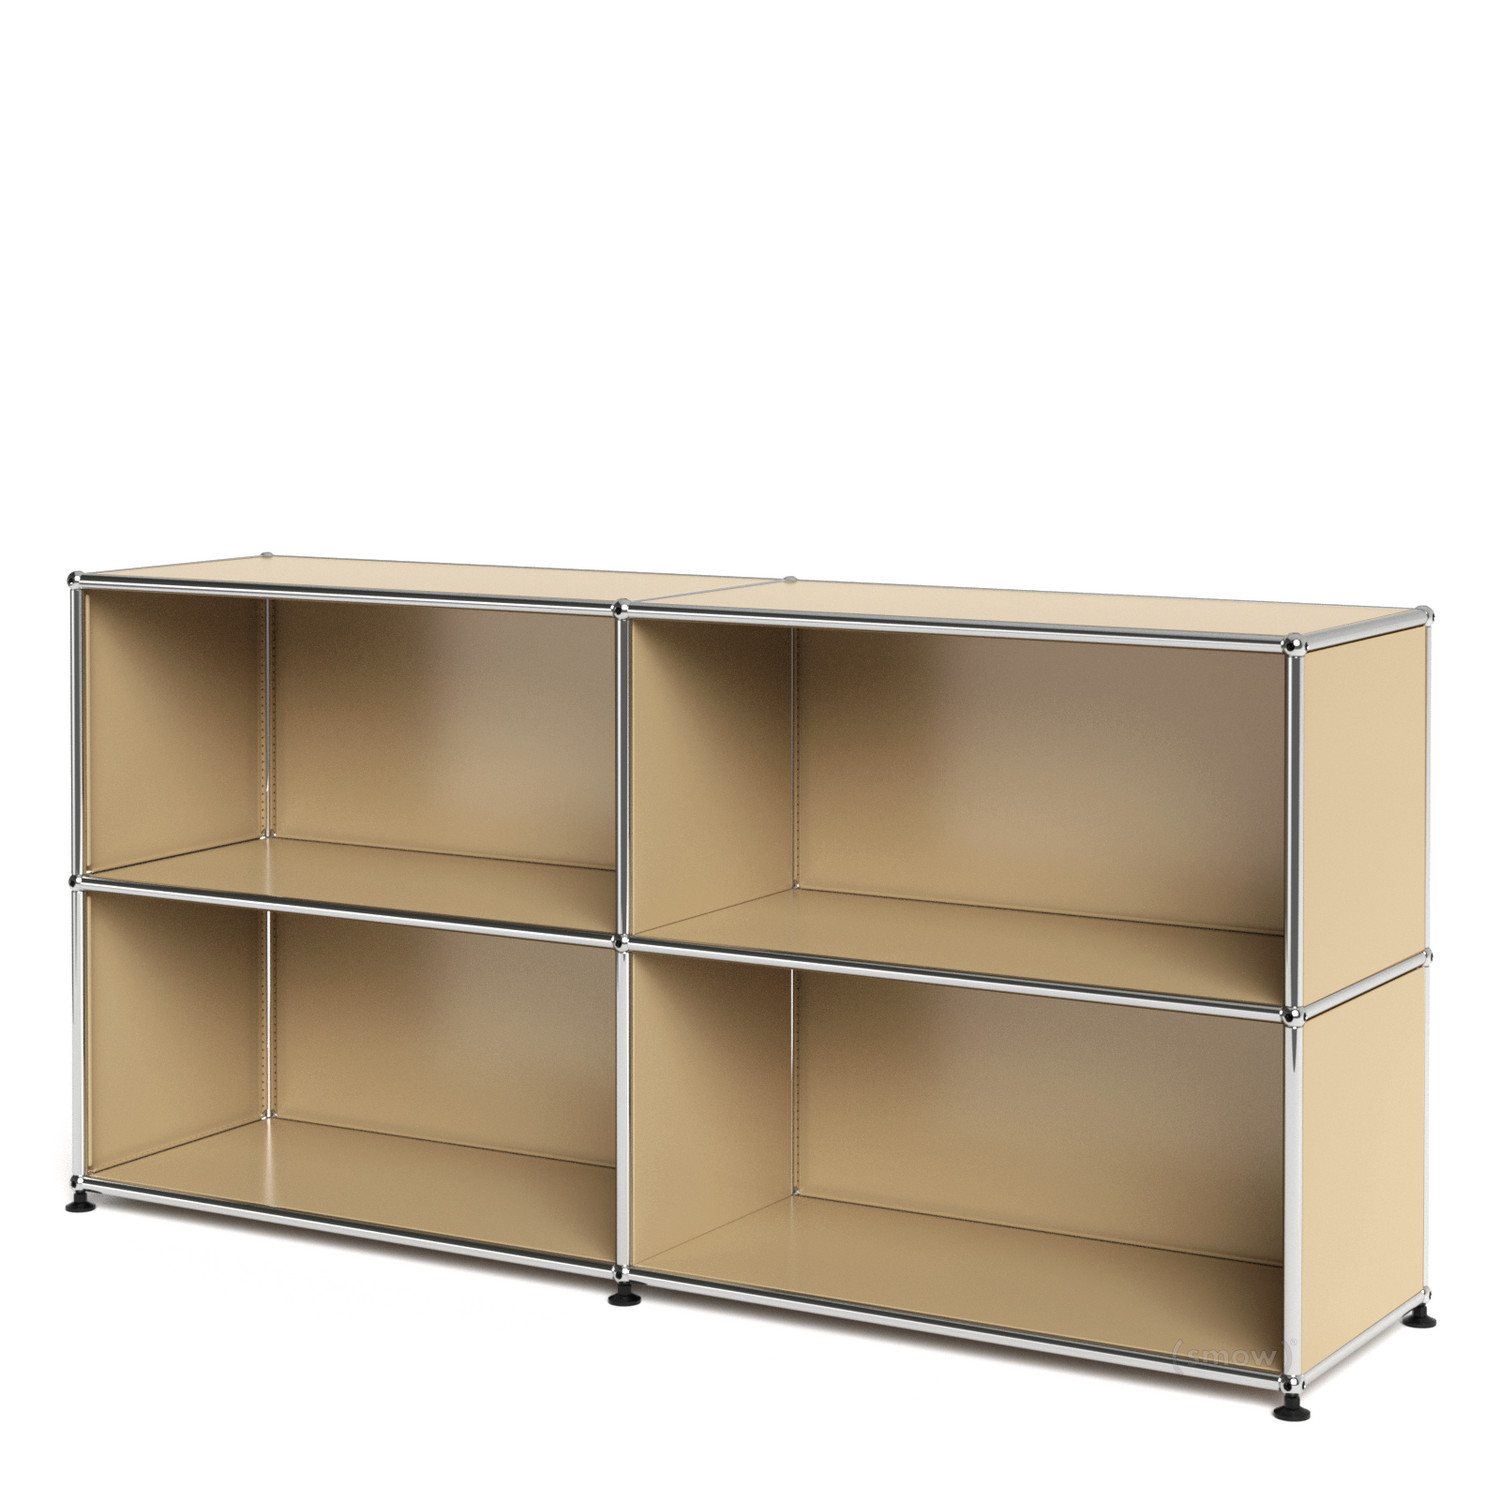 usm haller sideboard l open usm beige by fritz haller. Black Bedroom Furniture Sets. Home Design Ideas